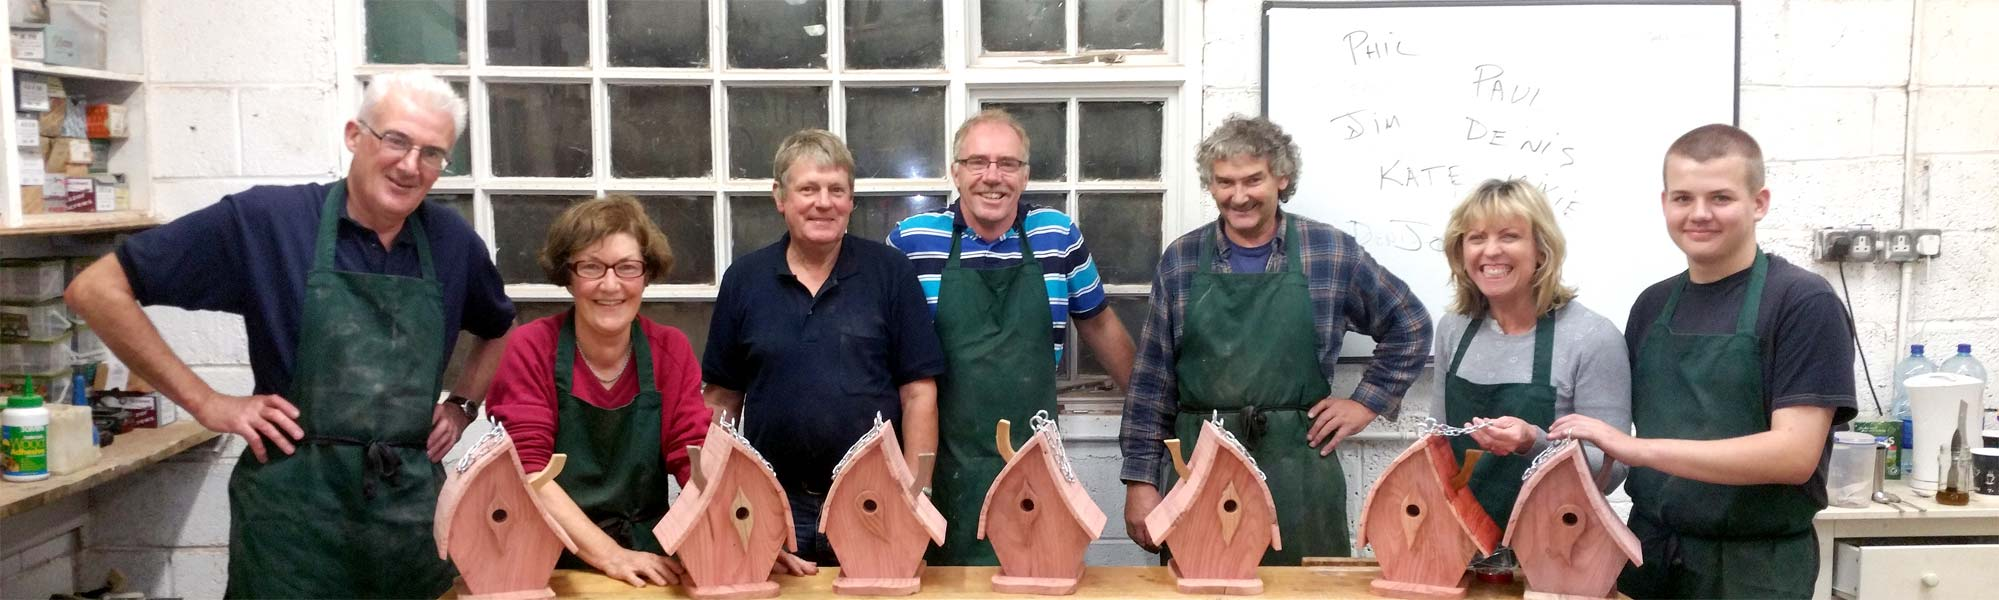 woodworking classes wexford & dublin | weekend wood carving & furniture  making courses wexford, ireland - bevel woodworking school